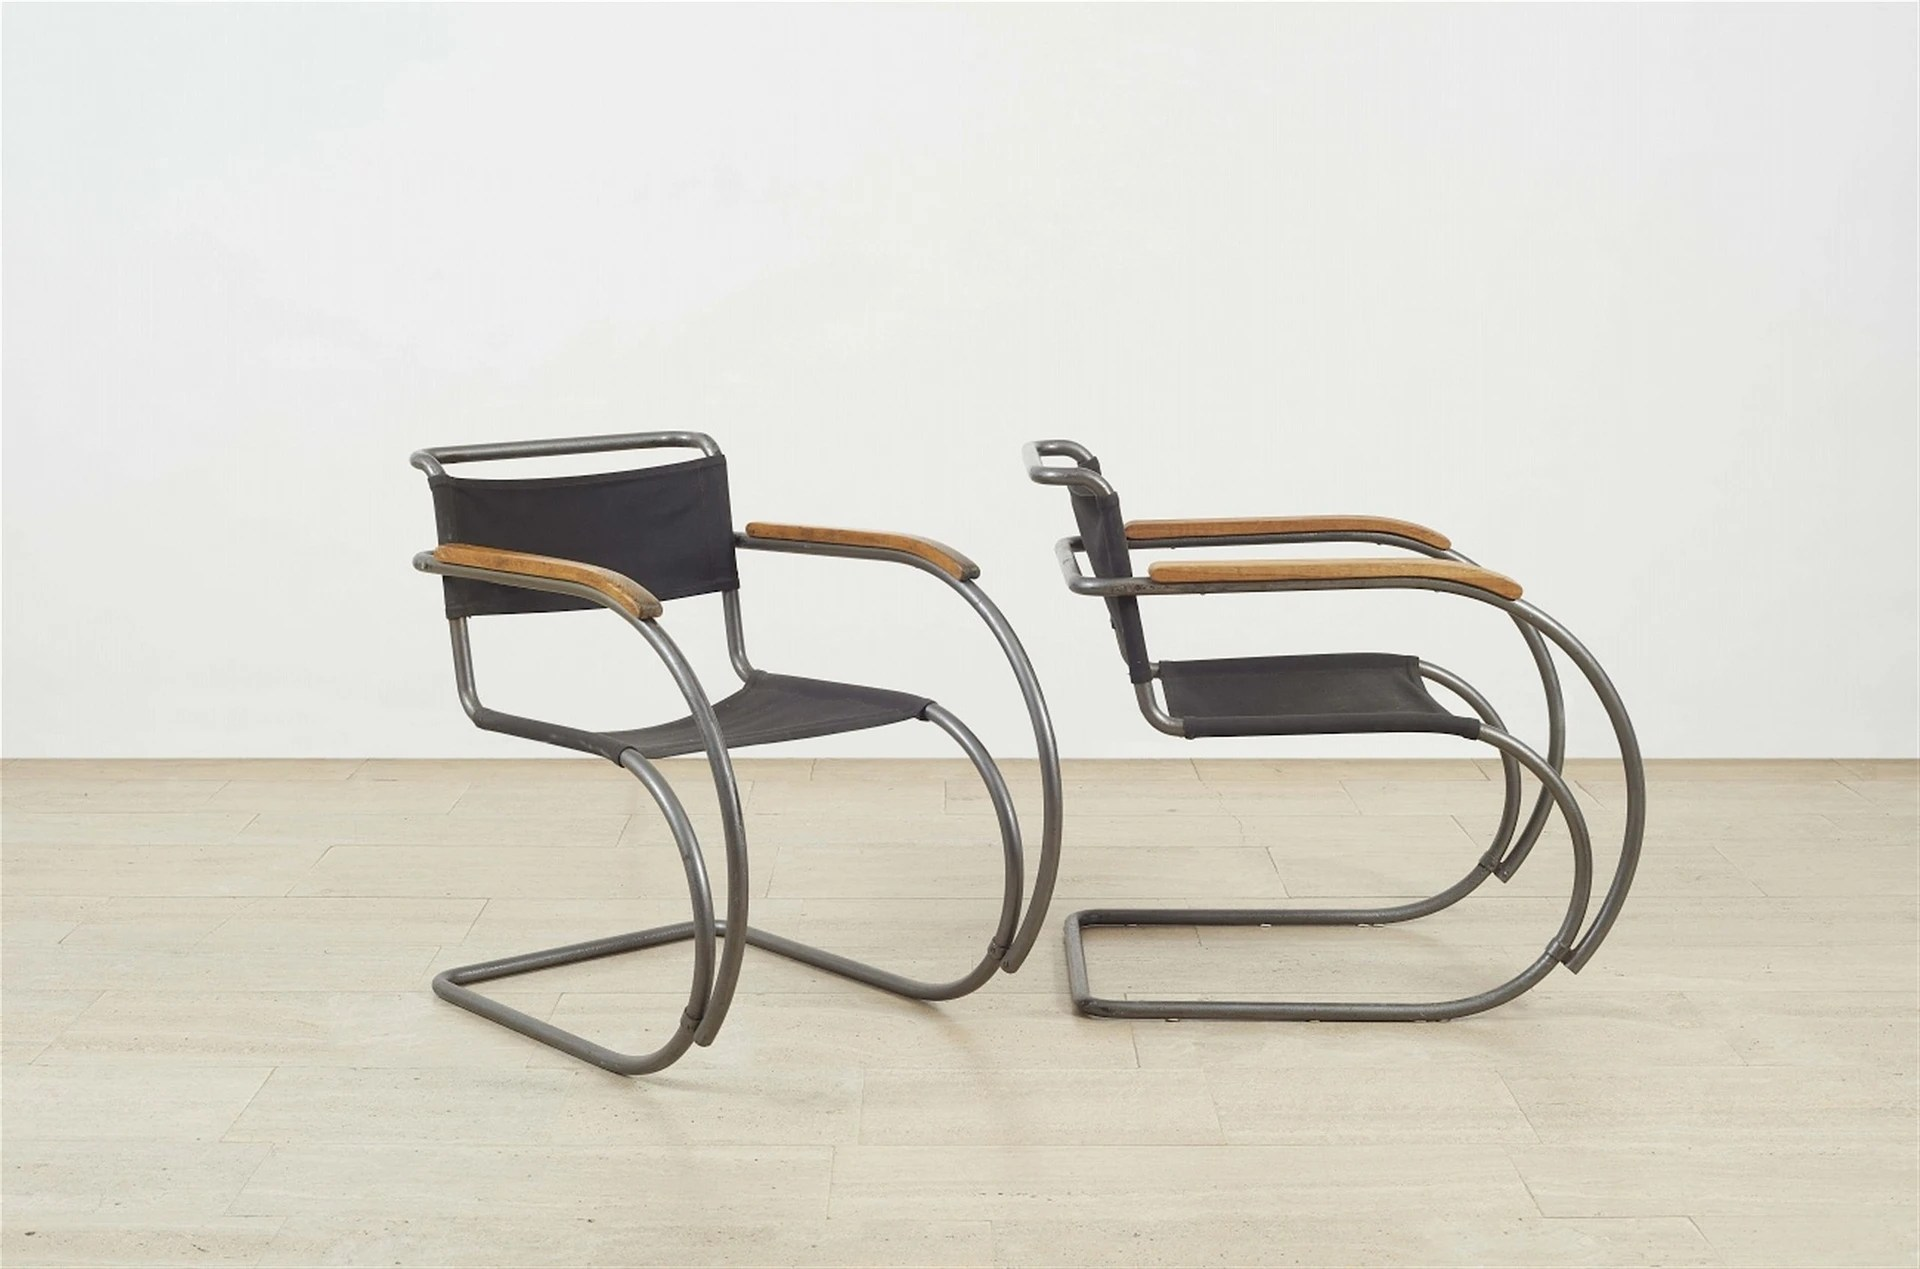 Ludwig Mies Van Der Rohe A Pair Of Cantilever Chairs Mr 20 1927 Mutualart